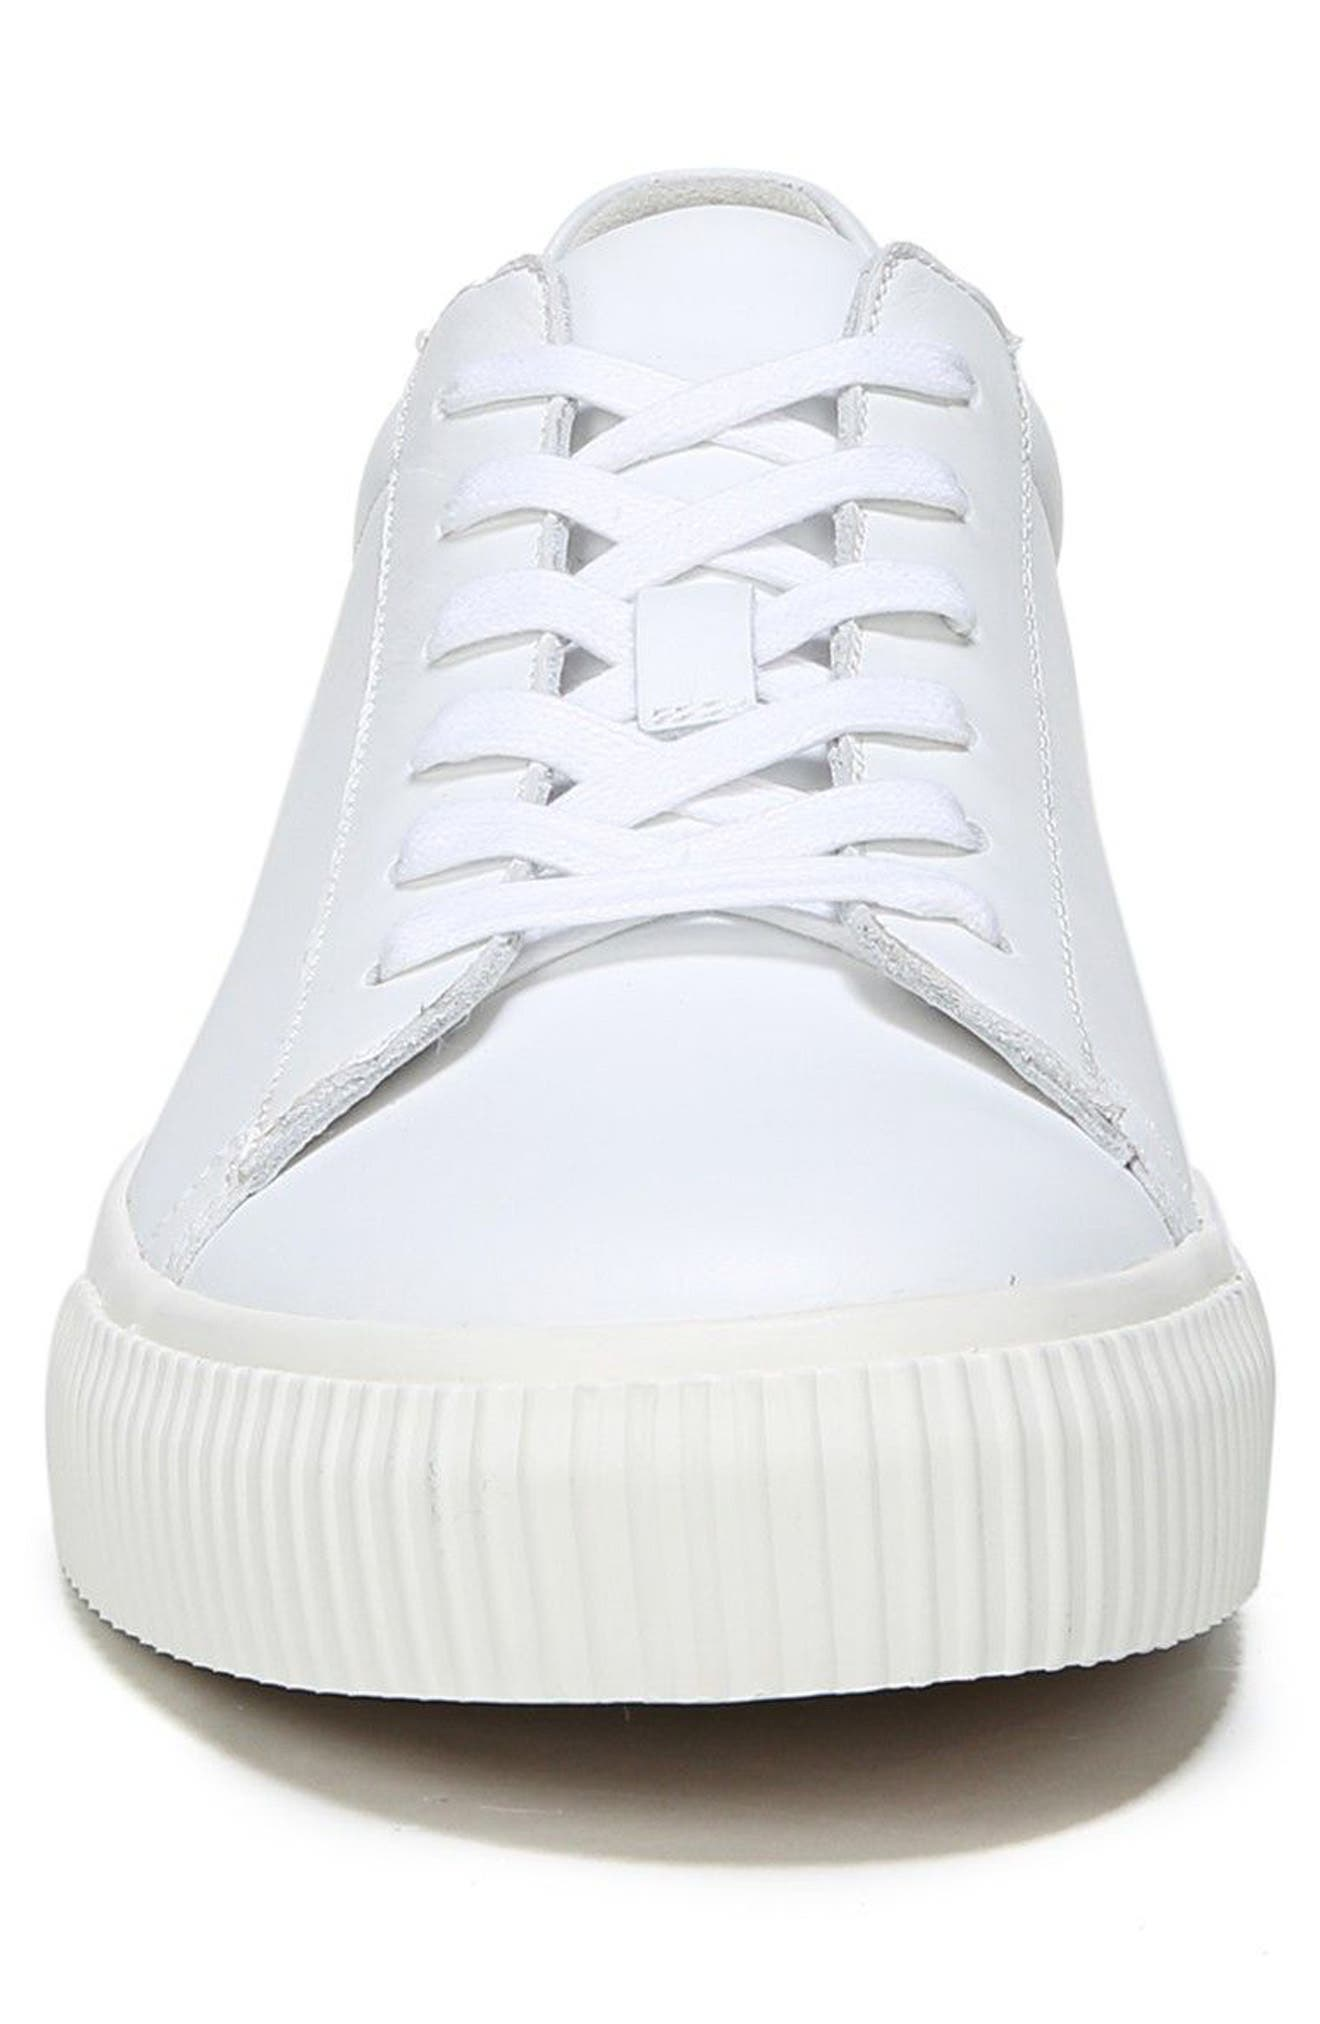 Kurtis Low Top Sneaker,                             Alternate thumbnail 4, color,                             WHITE